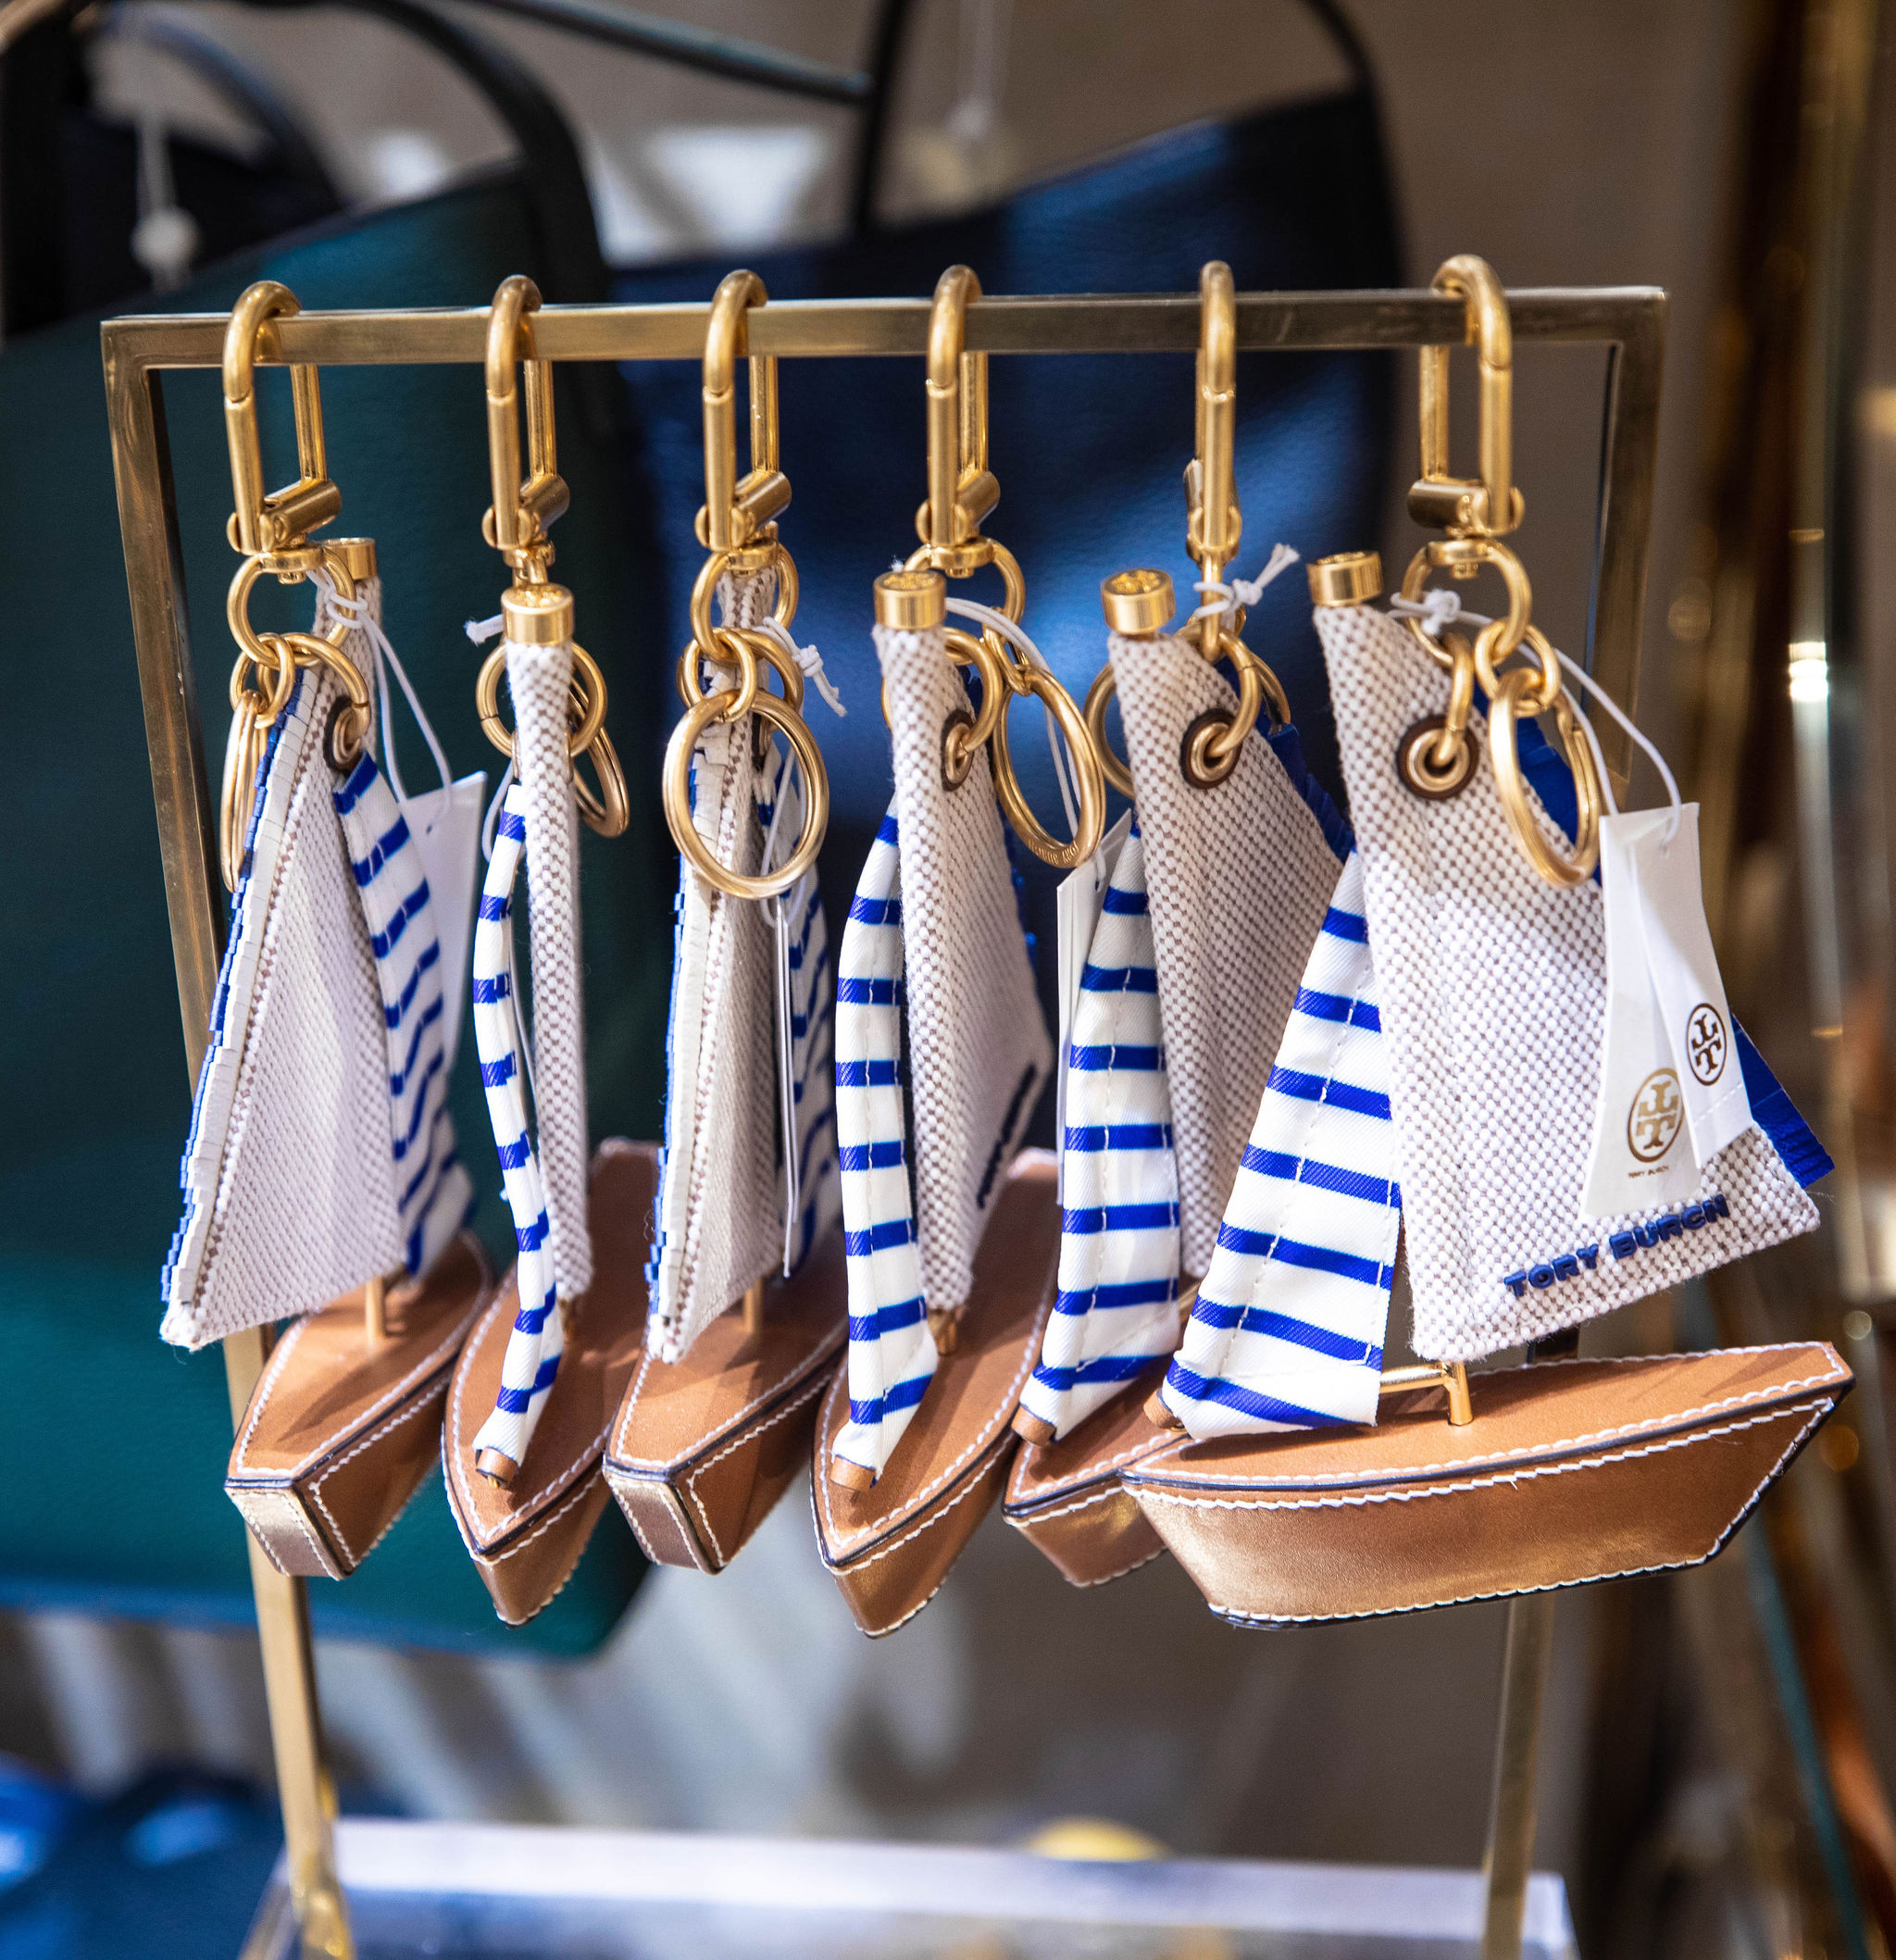 Sailboat Charm from Tory Burch Outlet at Fashion Outlets of Chicago Tory Burch Outlet Up to 80% off Designer Fashion by Annie Fairfax